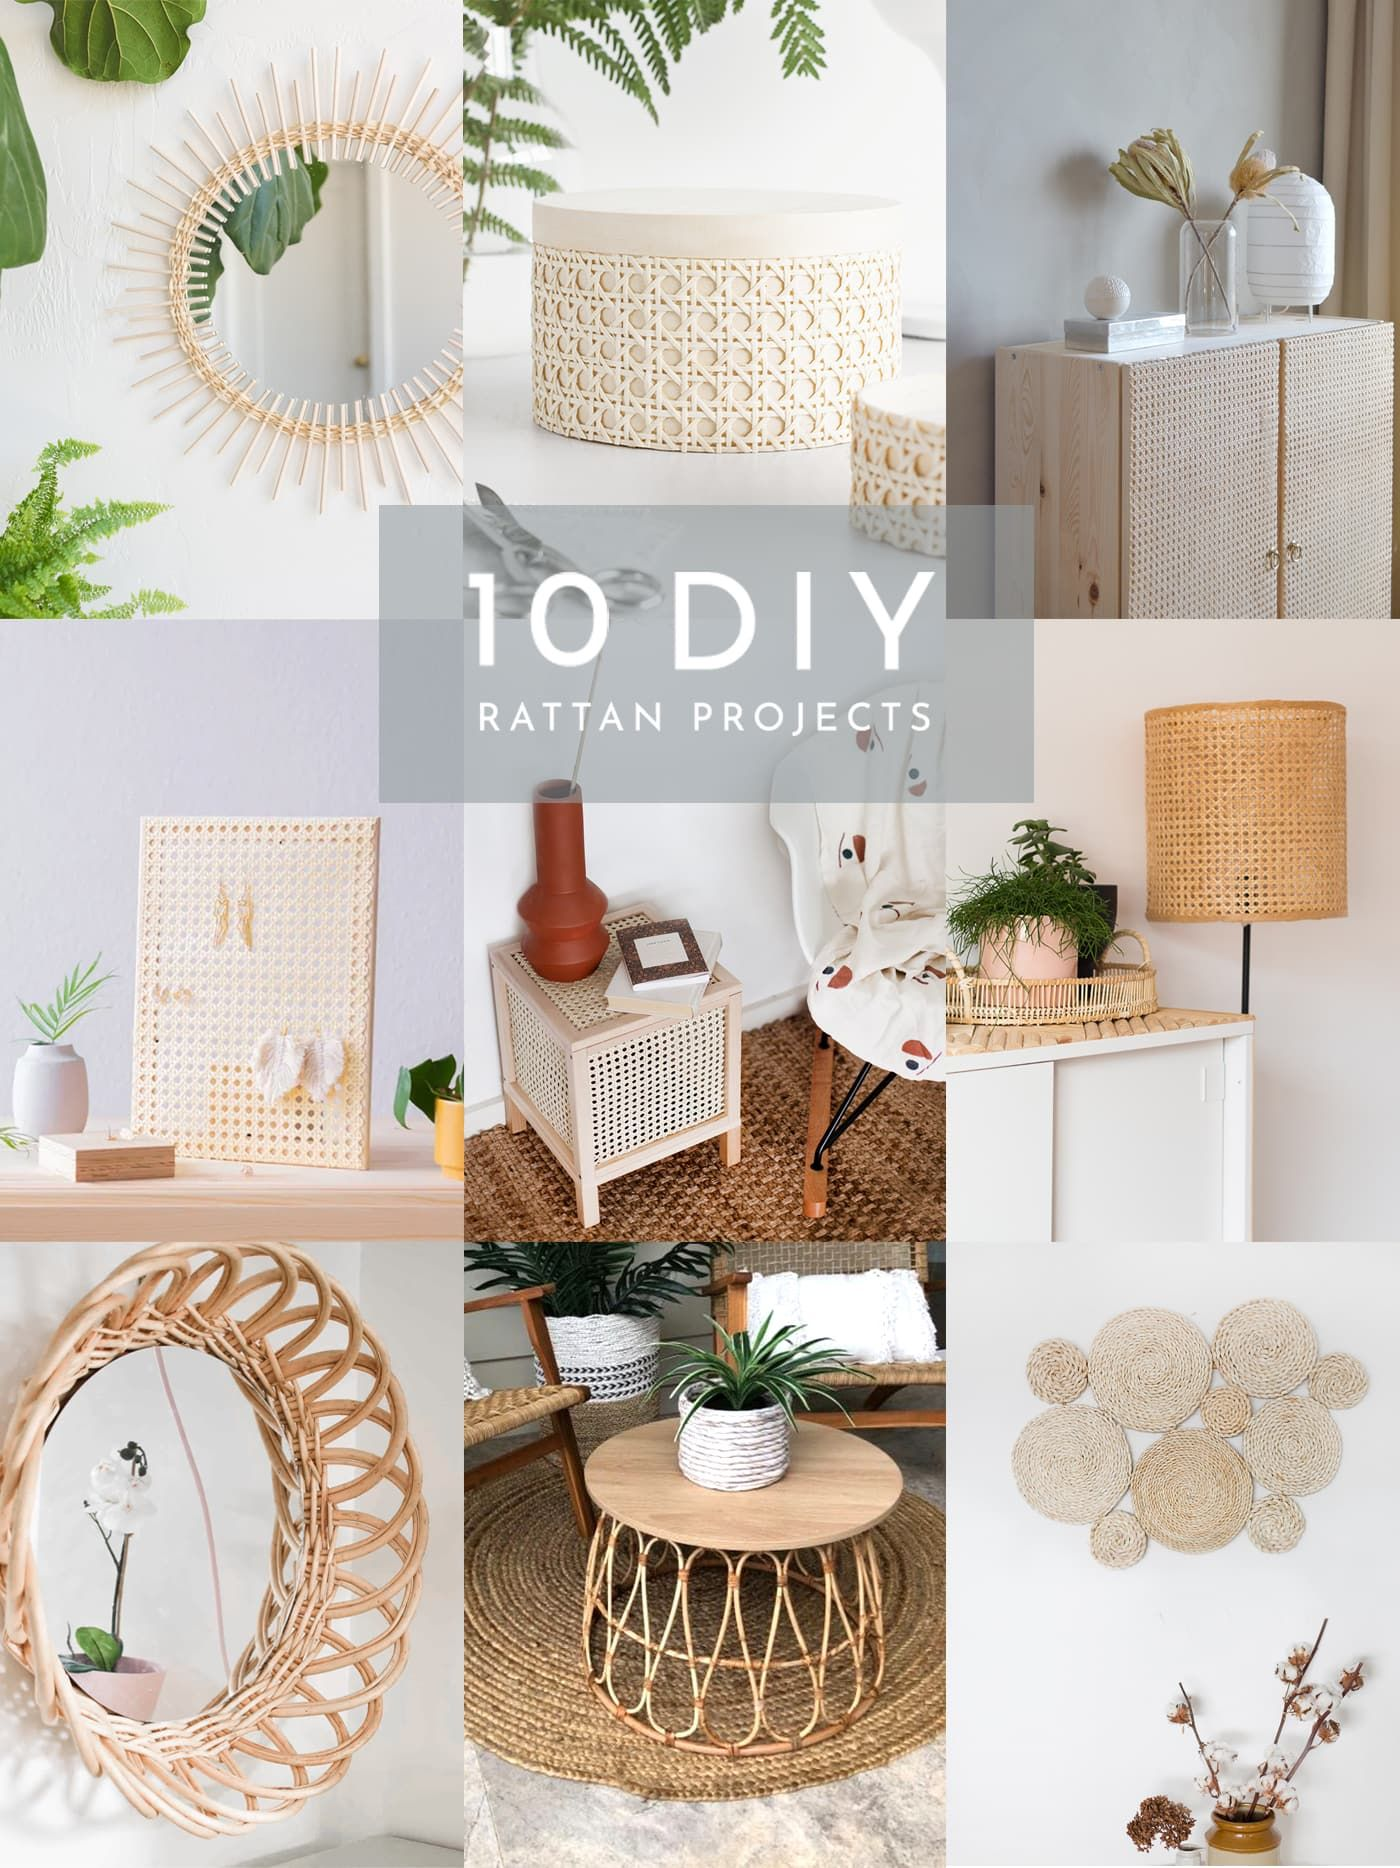 10 DIY Rattan Projects To Try | The Lovely Drawer